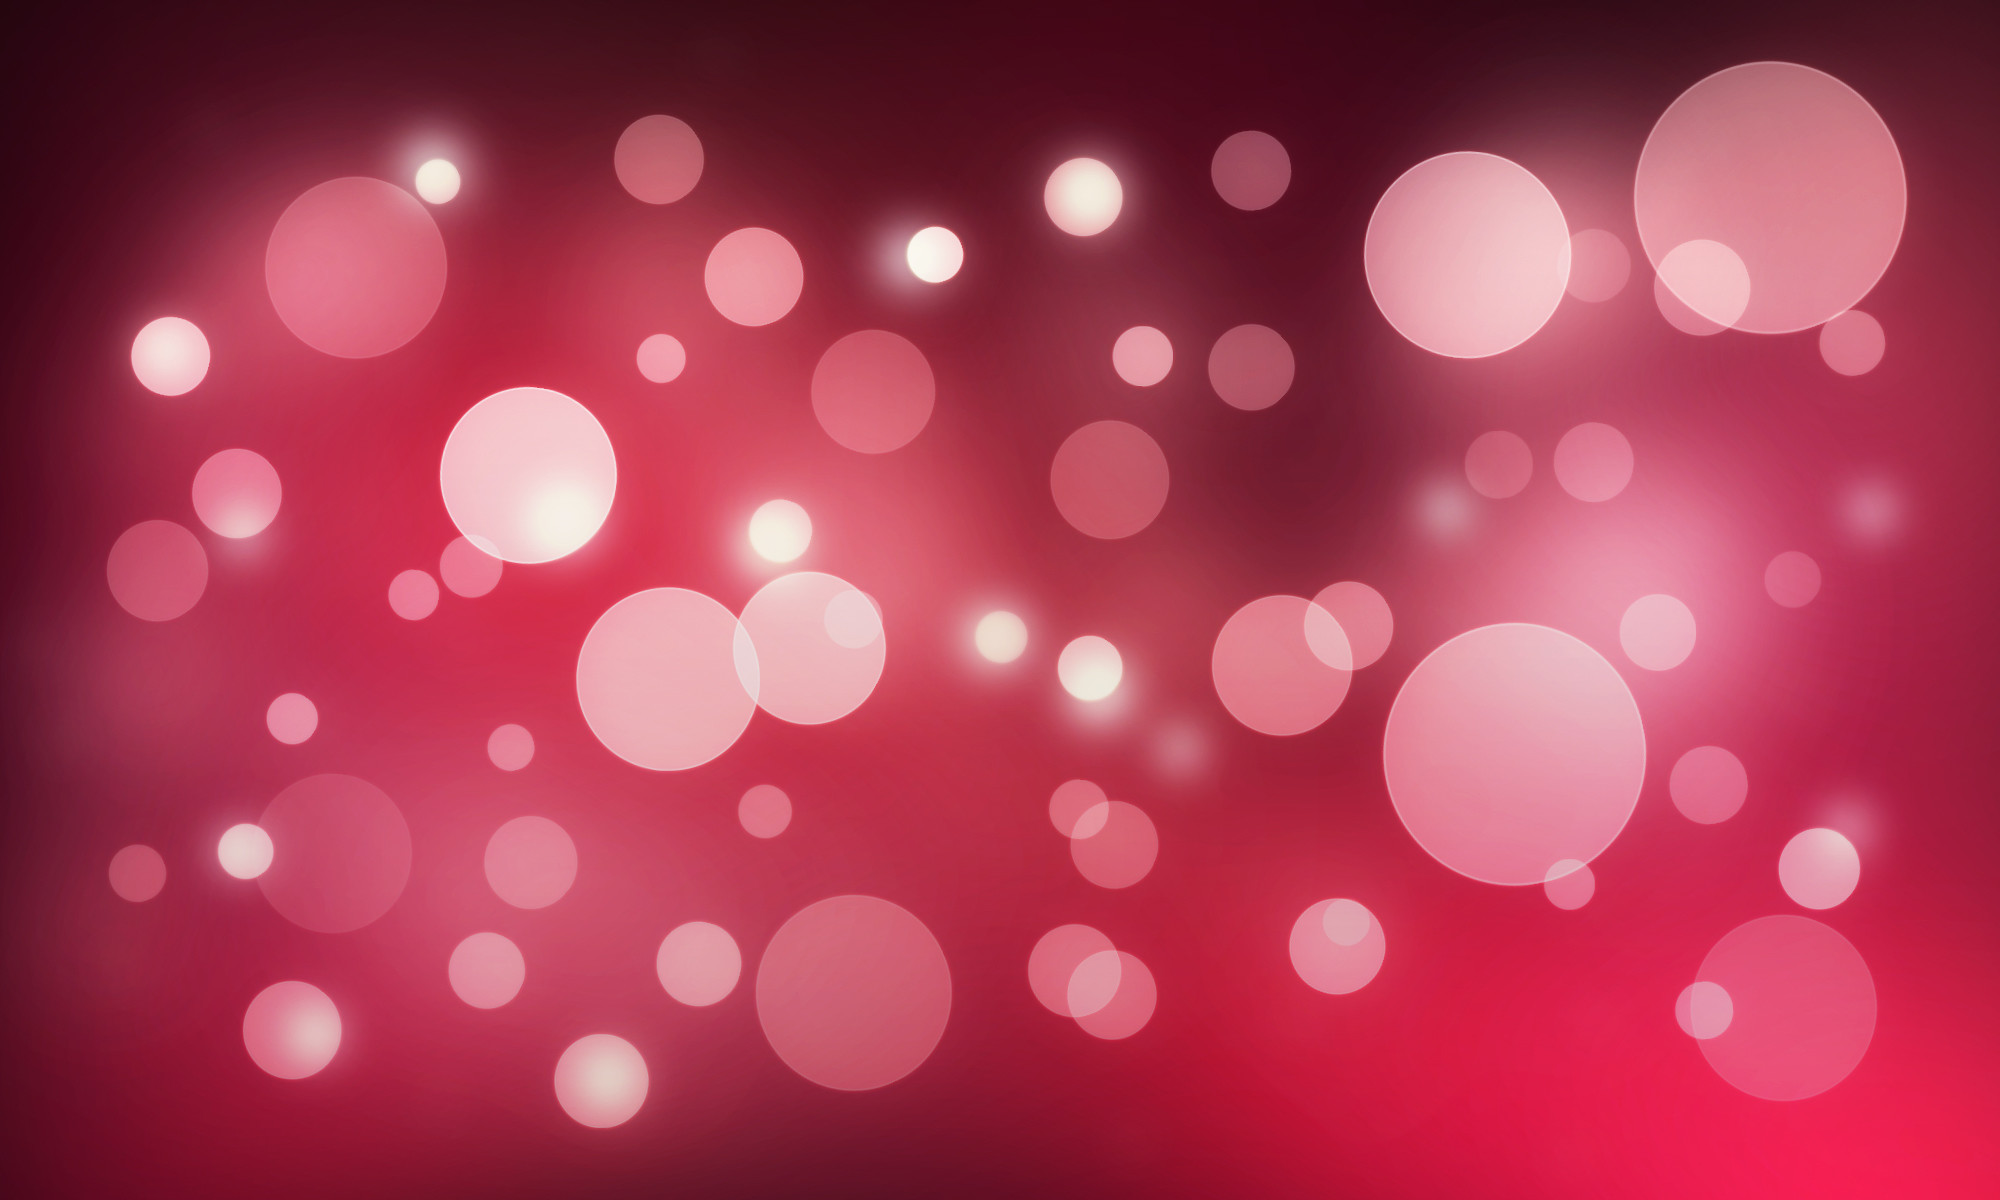 light red background wallpaper 58 images